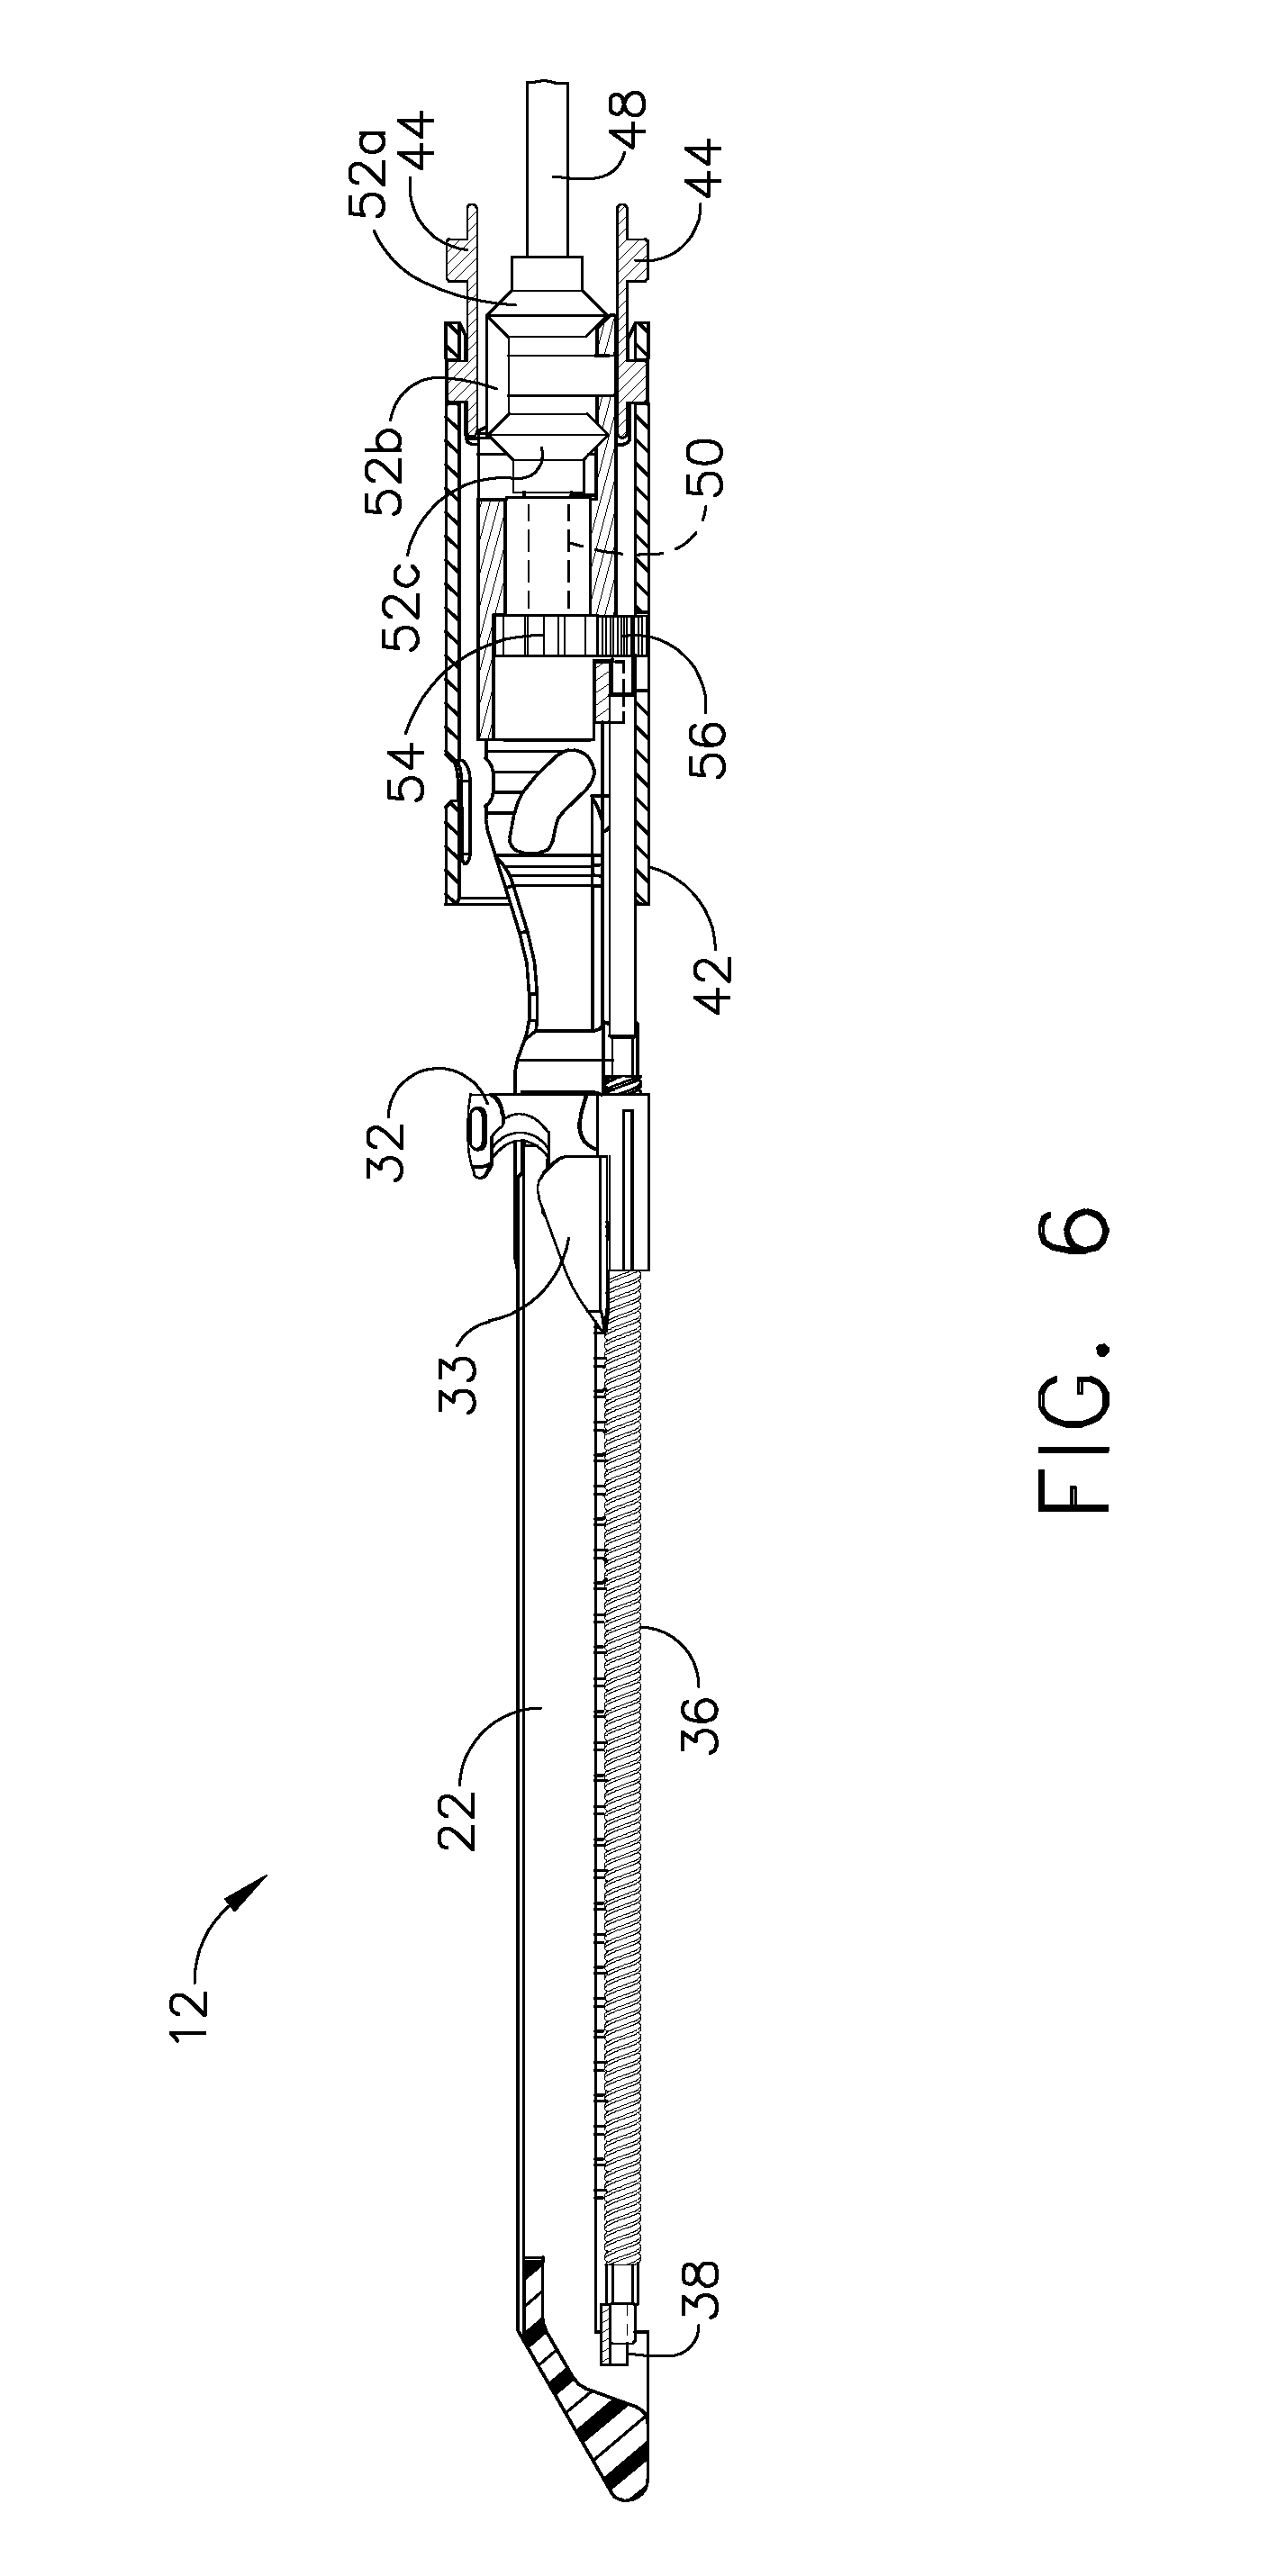 US8186555B2 - Motor-driven surgical cutting and fastening instrument